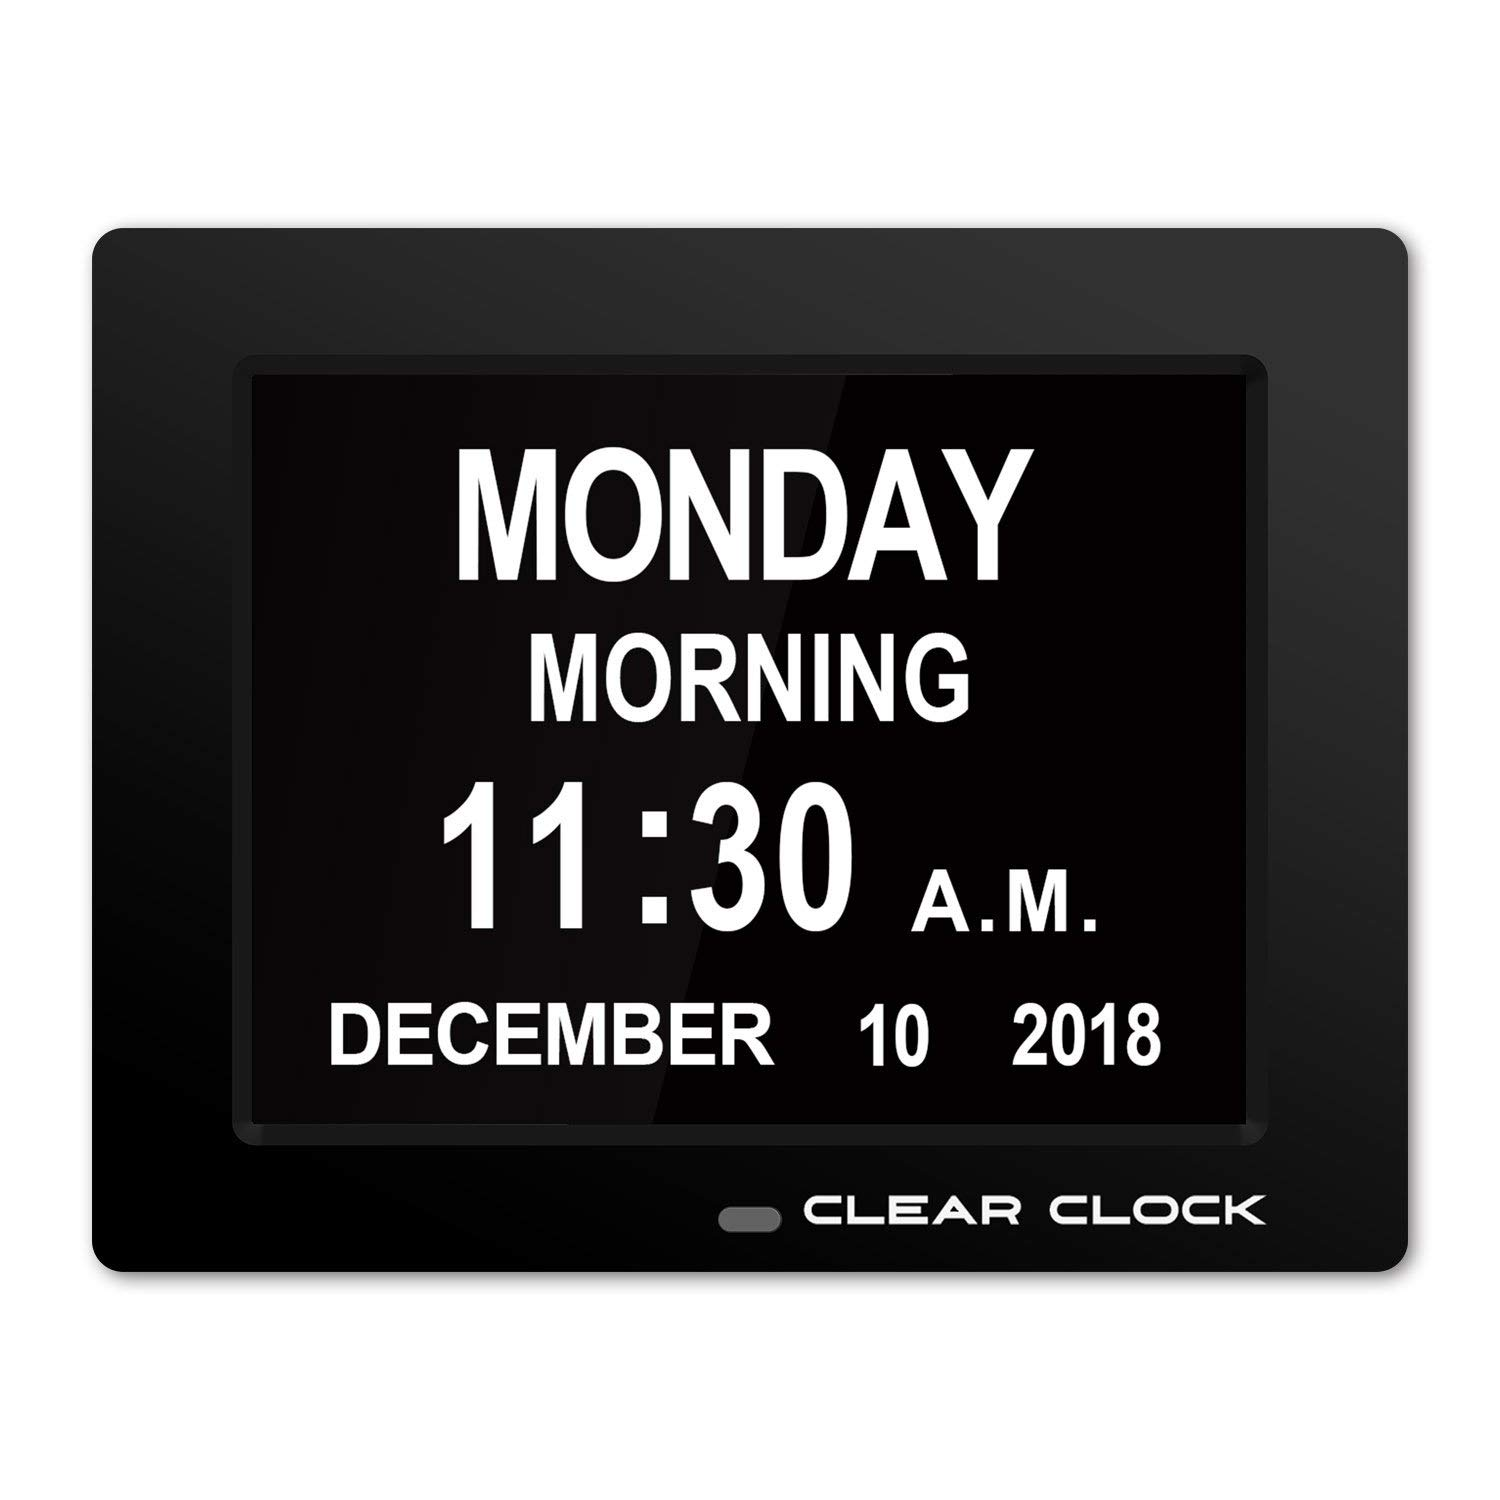 Clear Clock [Newest Version] Extra Large Digital Memory Loss Calendar Day Clock With Optional Day Cycle + Alarm Perfect For Elderly + Impaired Vision Dementia Clock Black